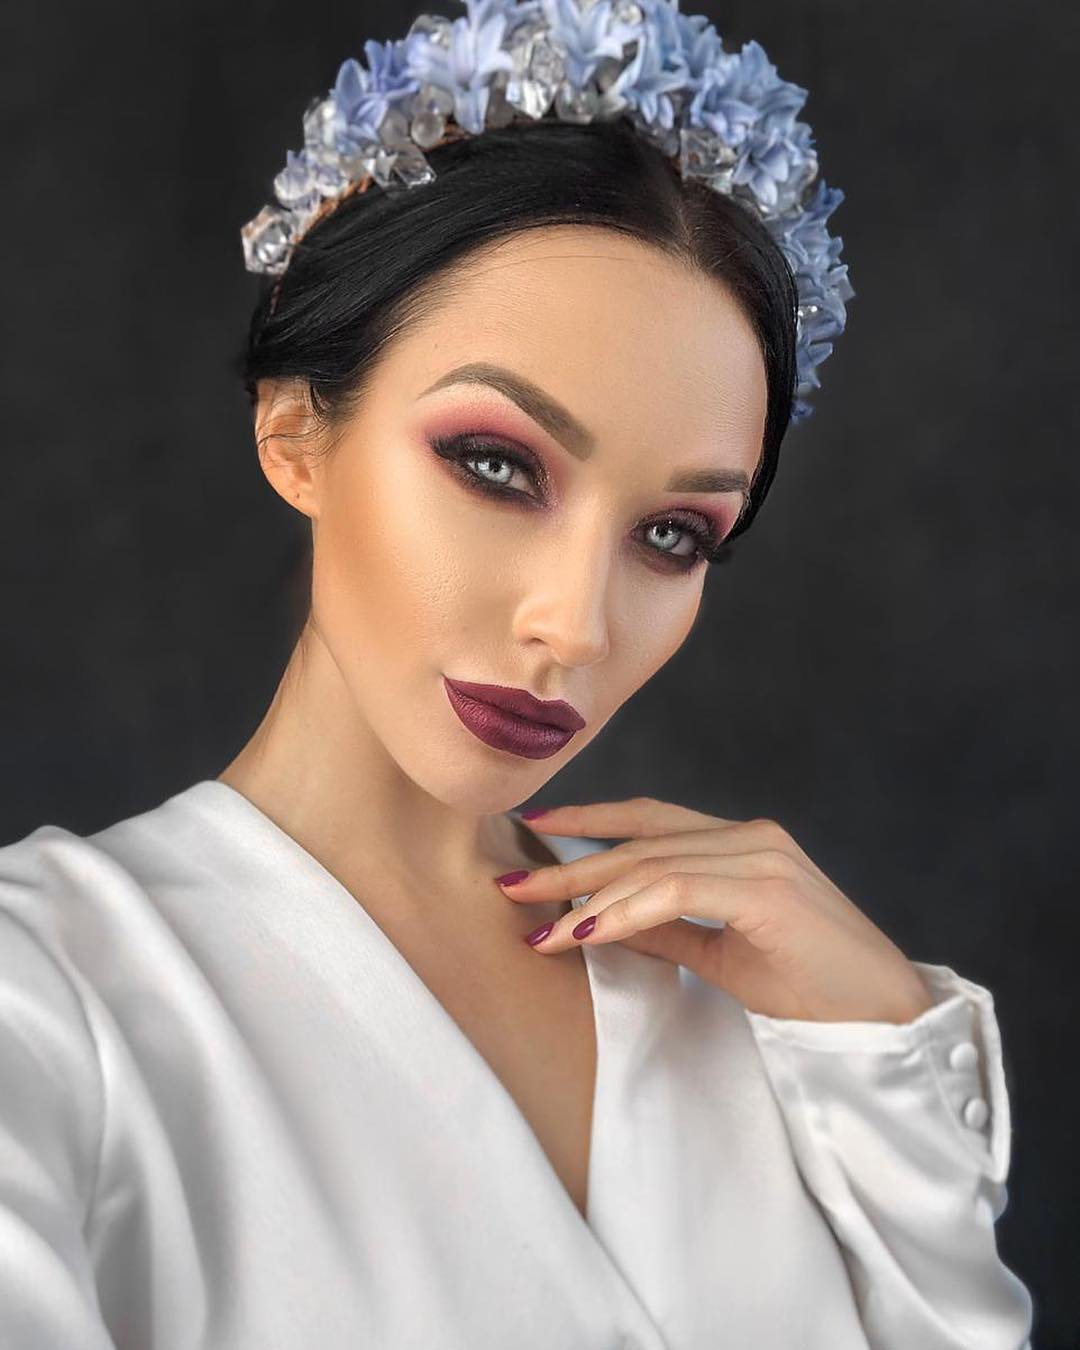 boho wedding makeup chic bright in burgundy tones evgenyamelnikova7